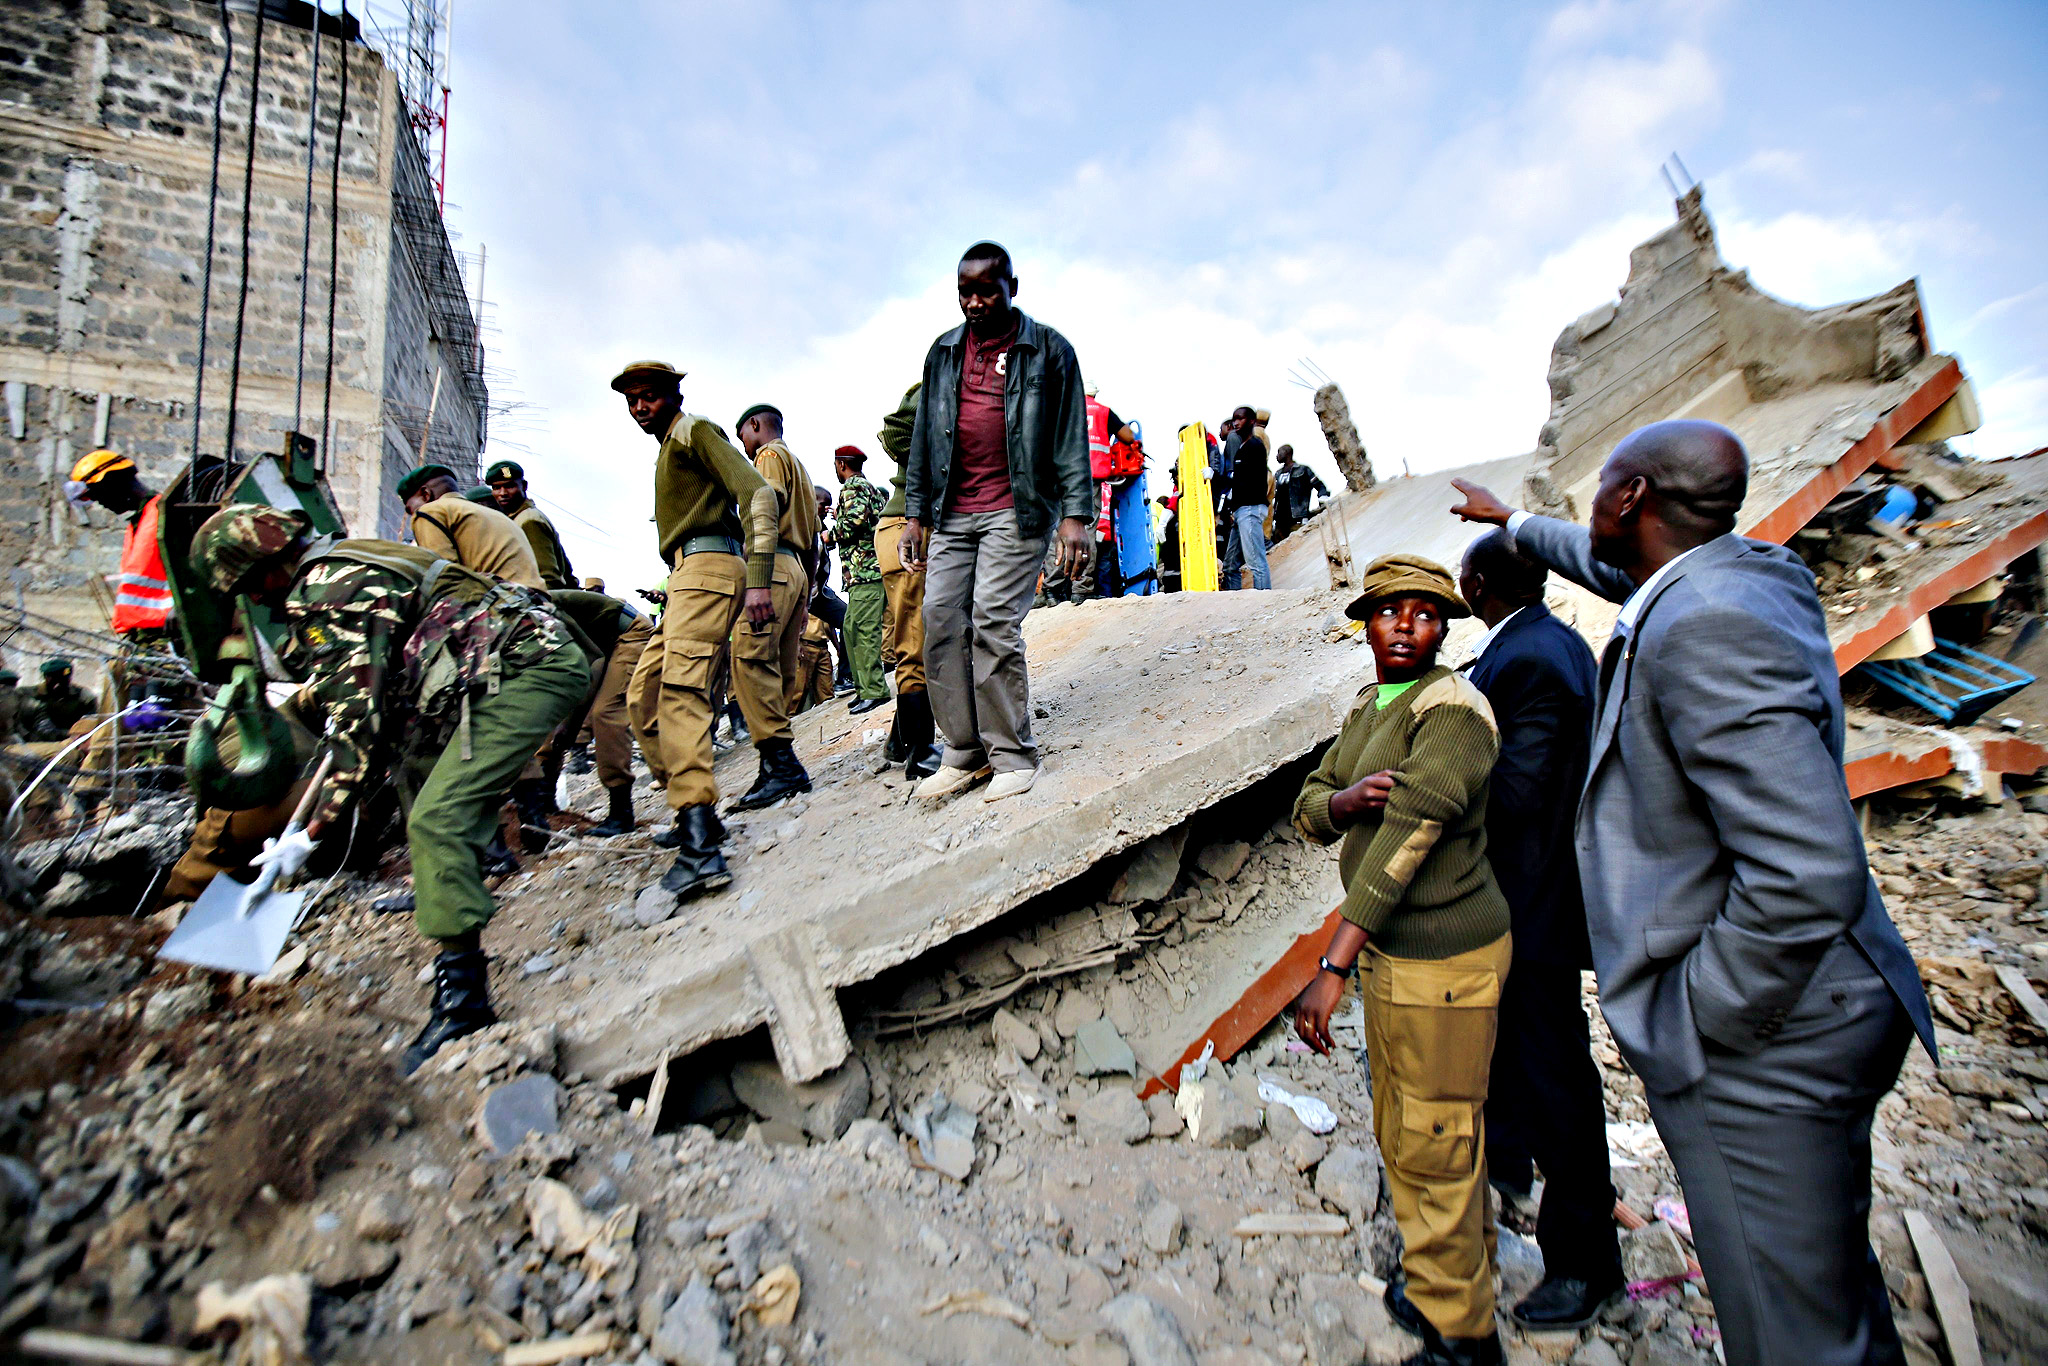 Rescue workers gather around a collapsed building in Makongeni area of Nairobi, Kenya. Several people are feared trapped or dead after a five-storey residential building collapsed in the early hours of Wednesday. The cause of the collapse in unknown